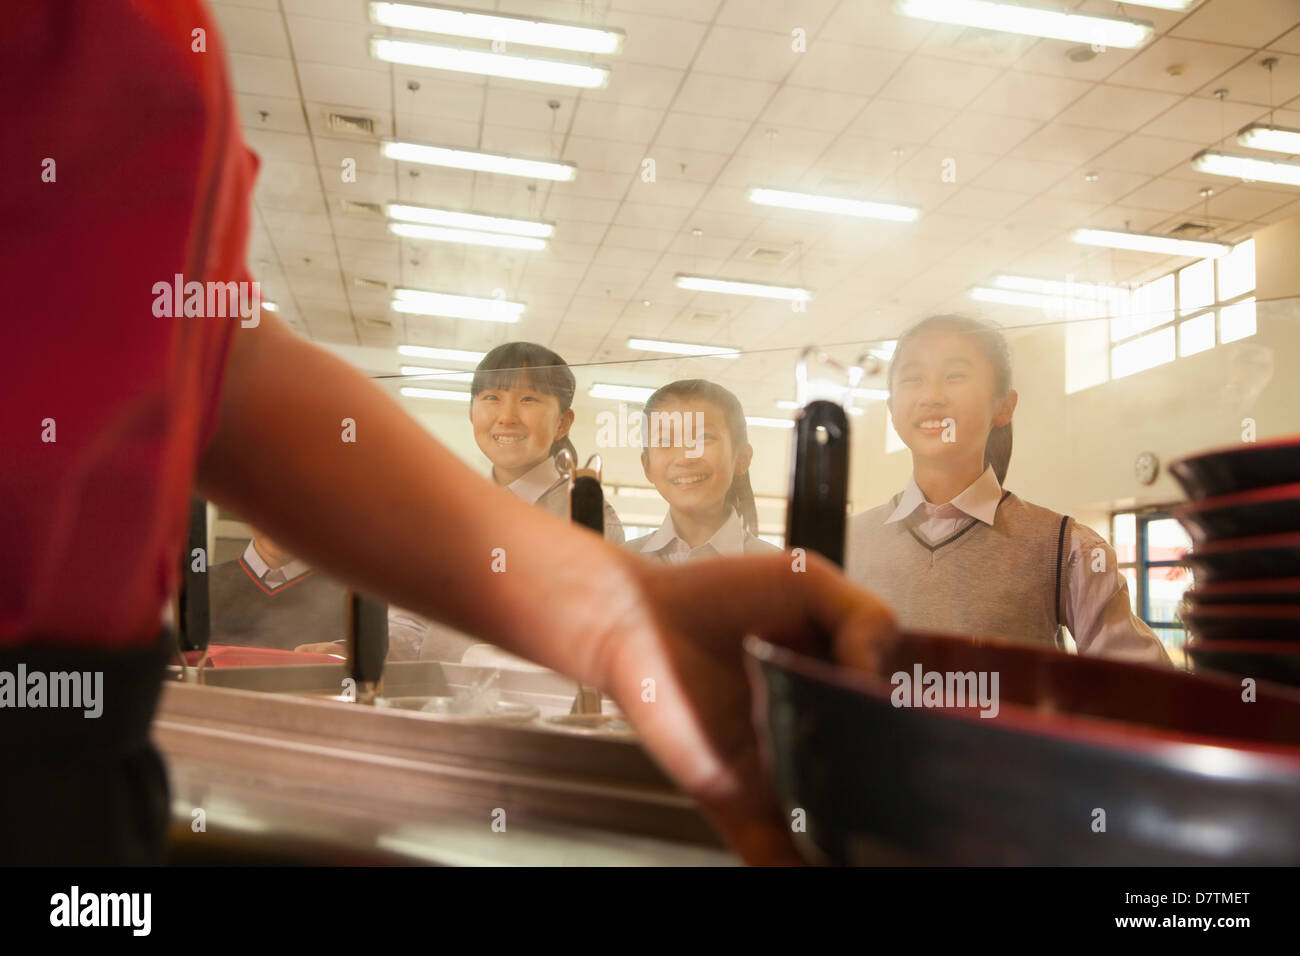 School cafeteria worker serves noodles to students - Stock Image